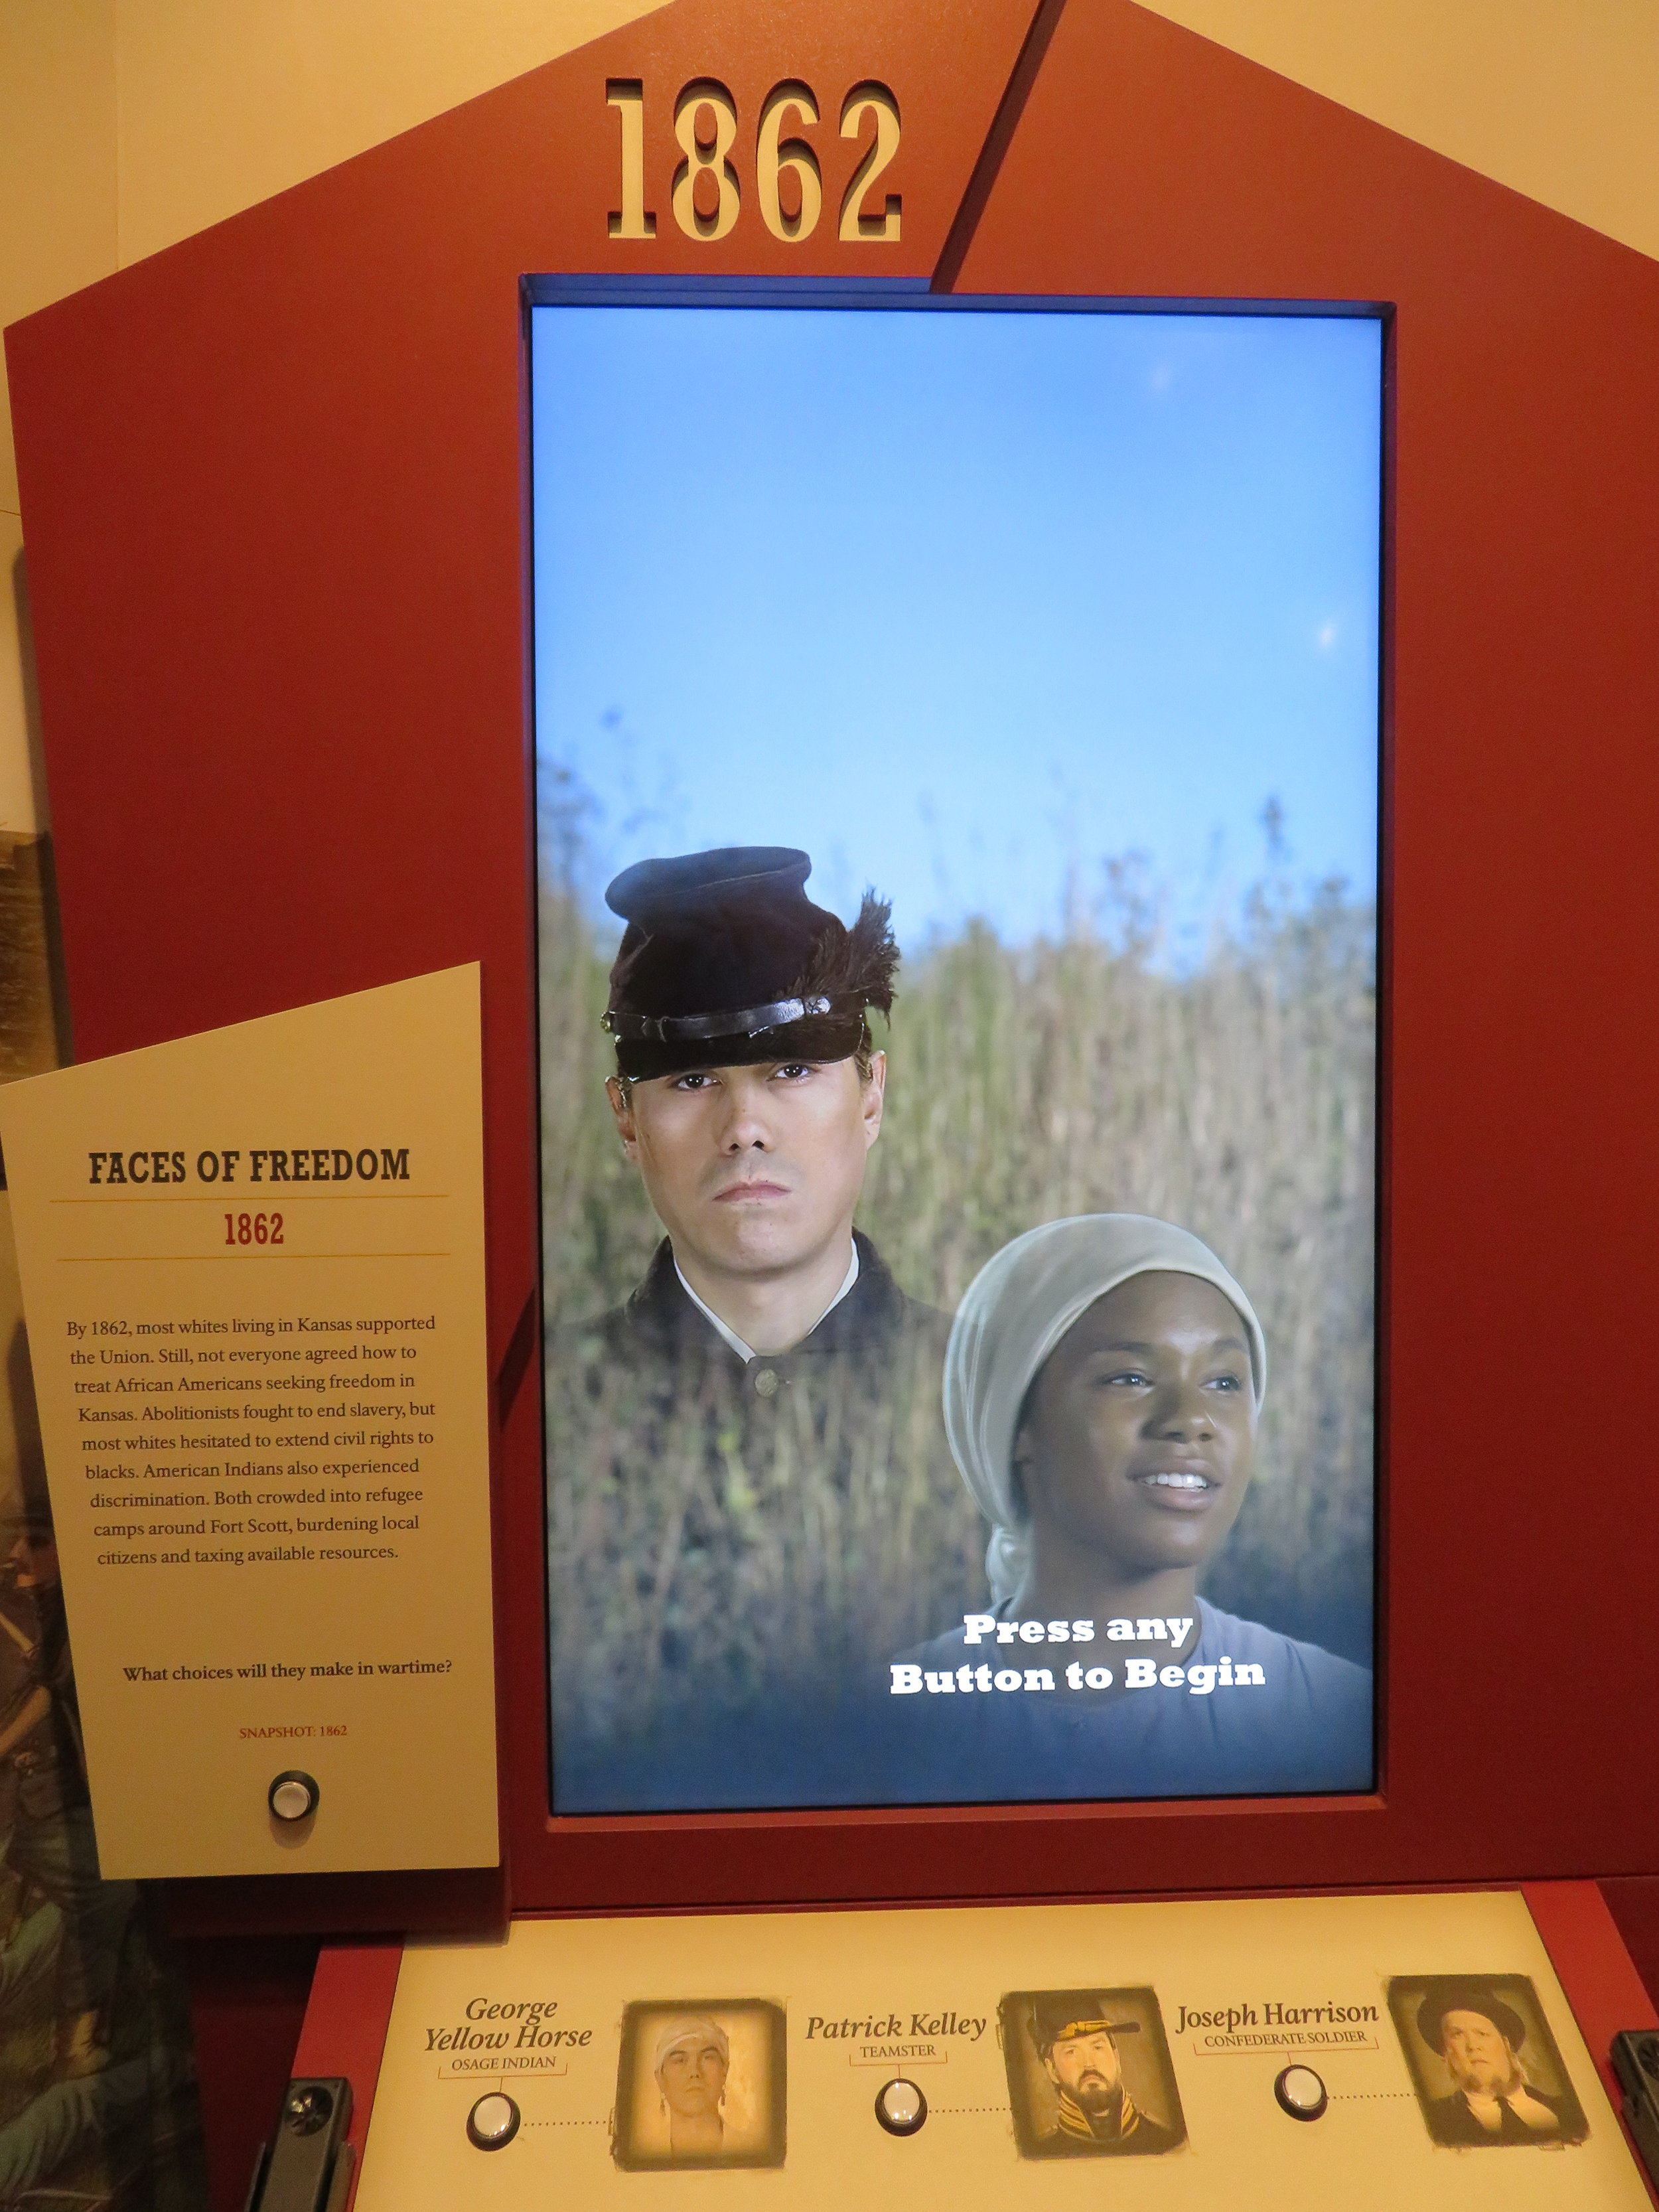 An interesting interactive media display contrasted the many views of Kansans on slavery.